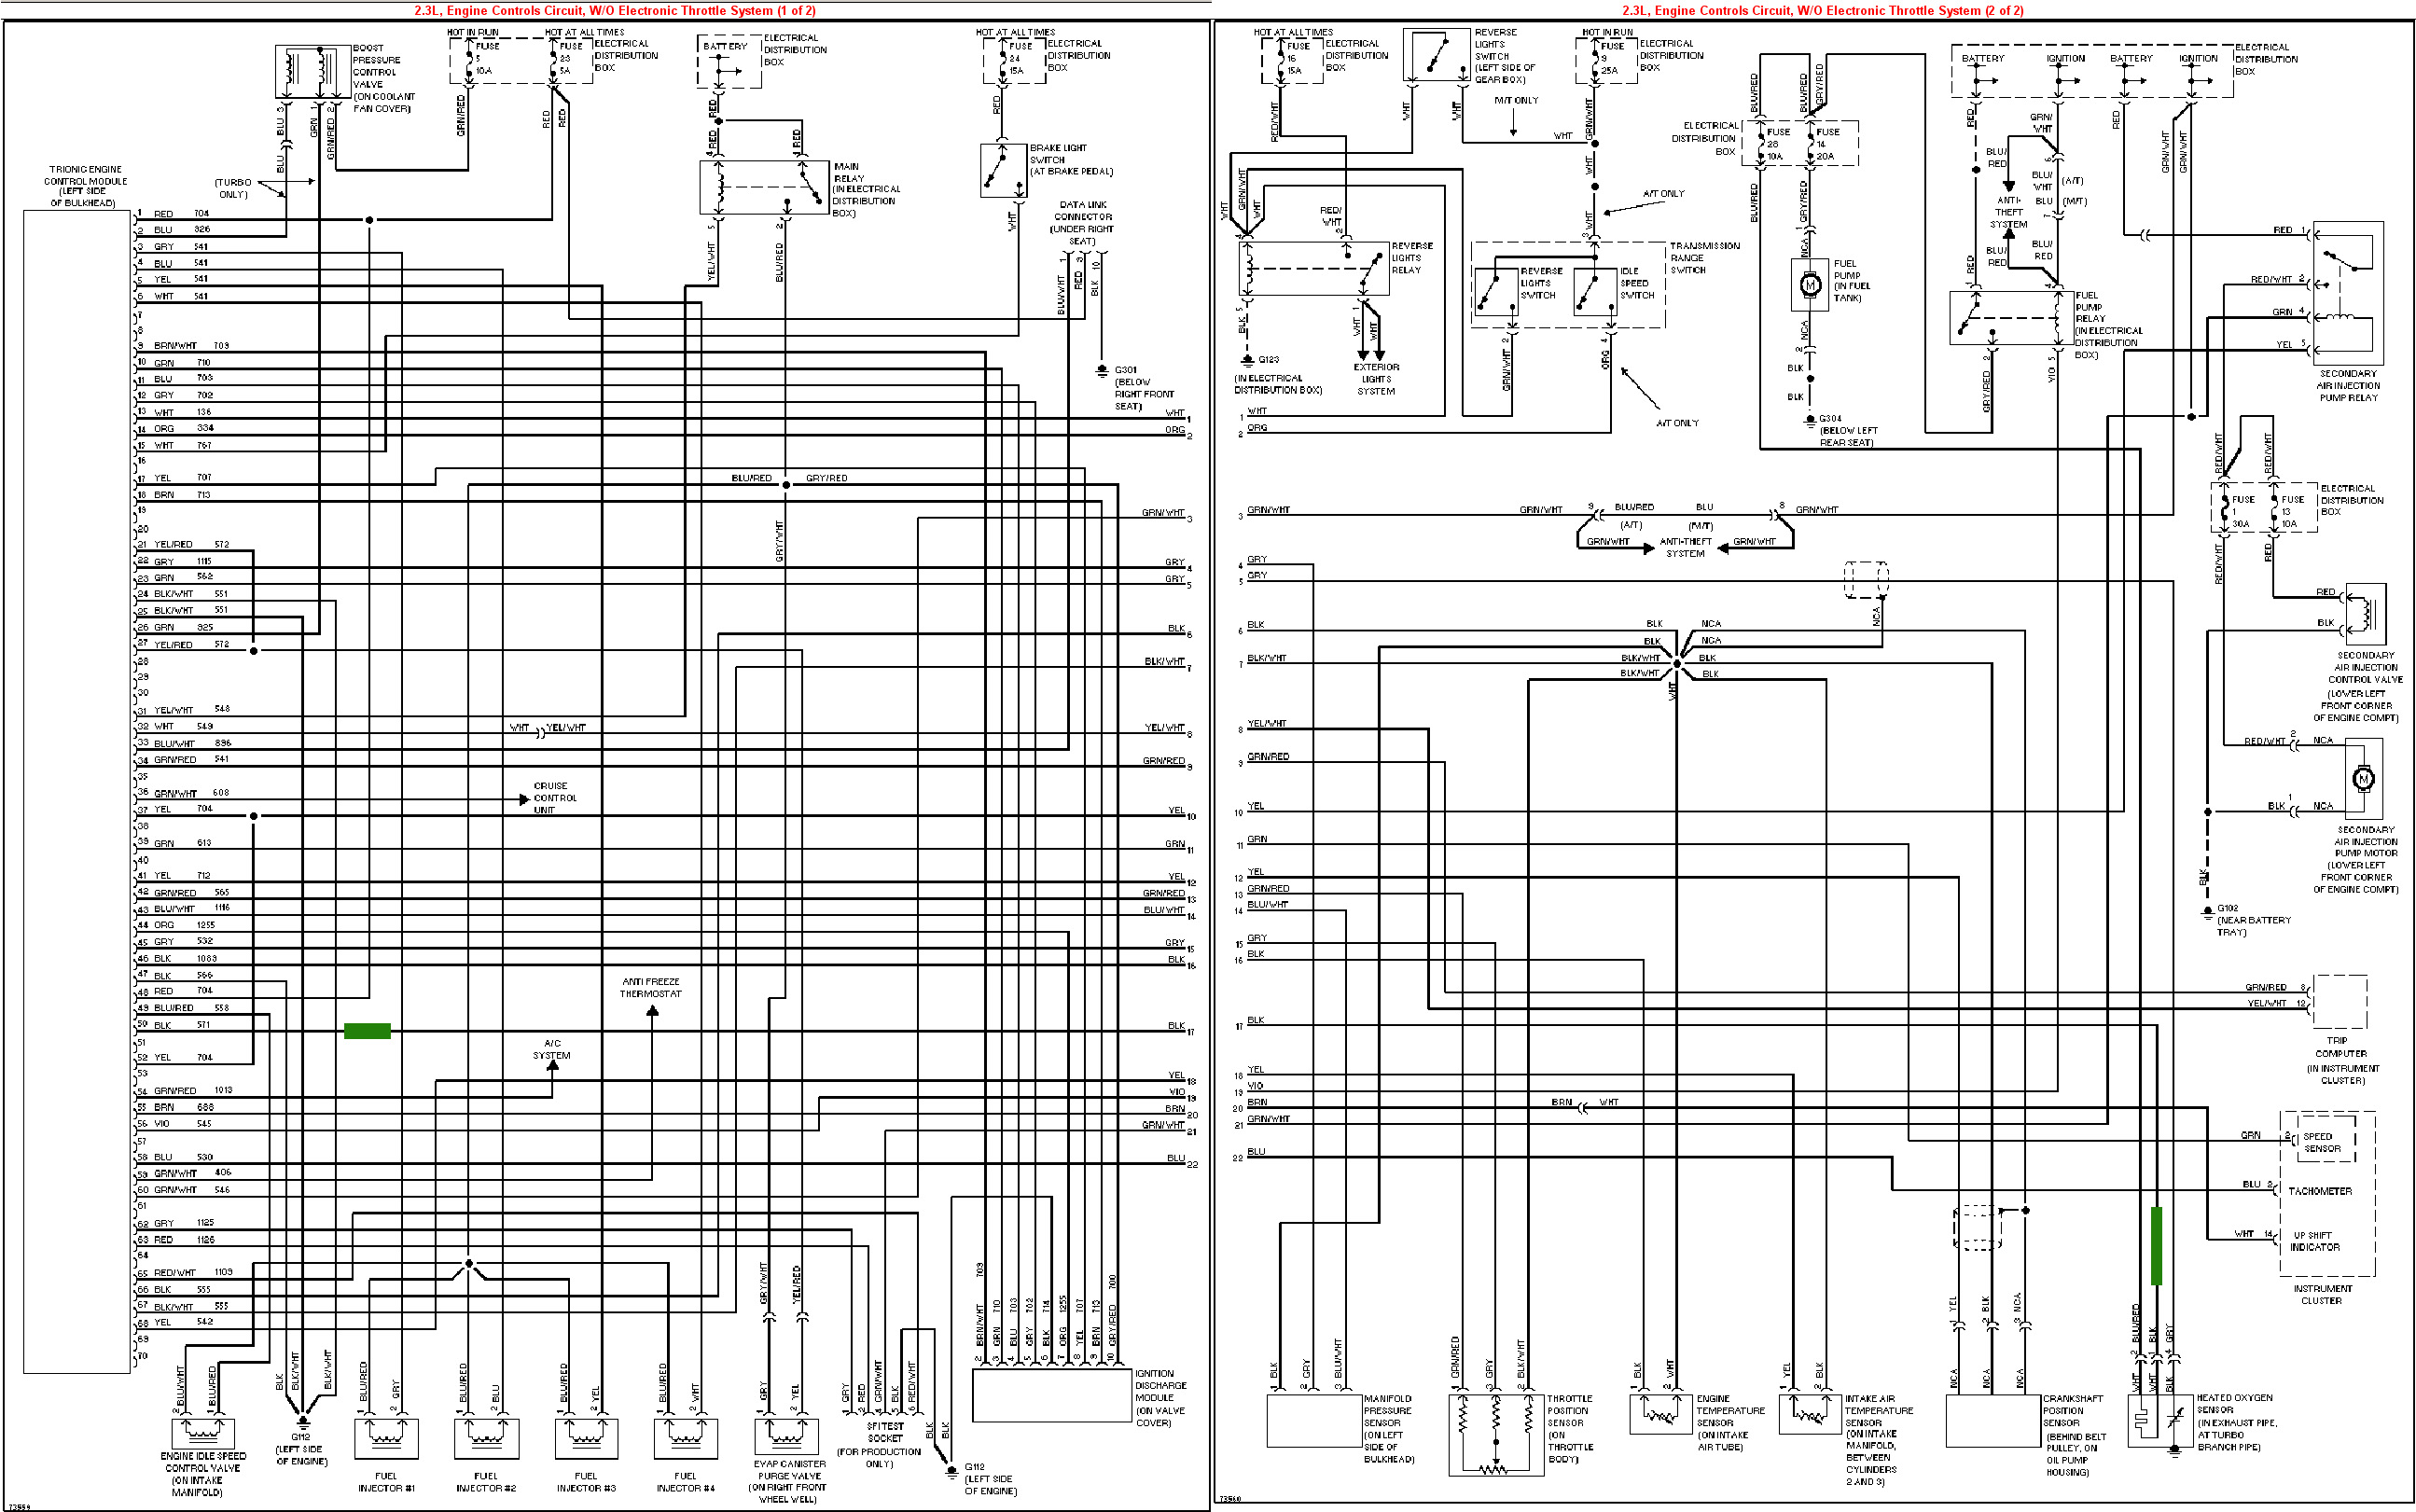 Saab Wire Diagram Simple Wiring 1998 Ford Explorer Xlt Radio 2003 93 Opinions About U2022 Gmc